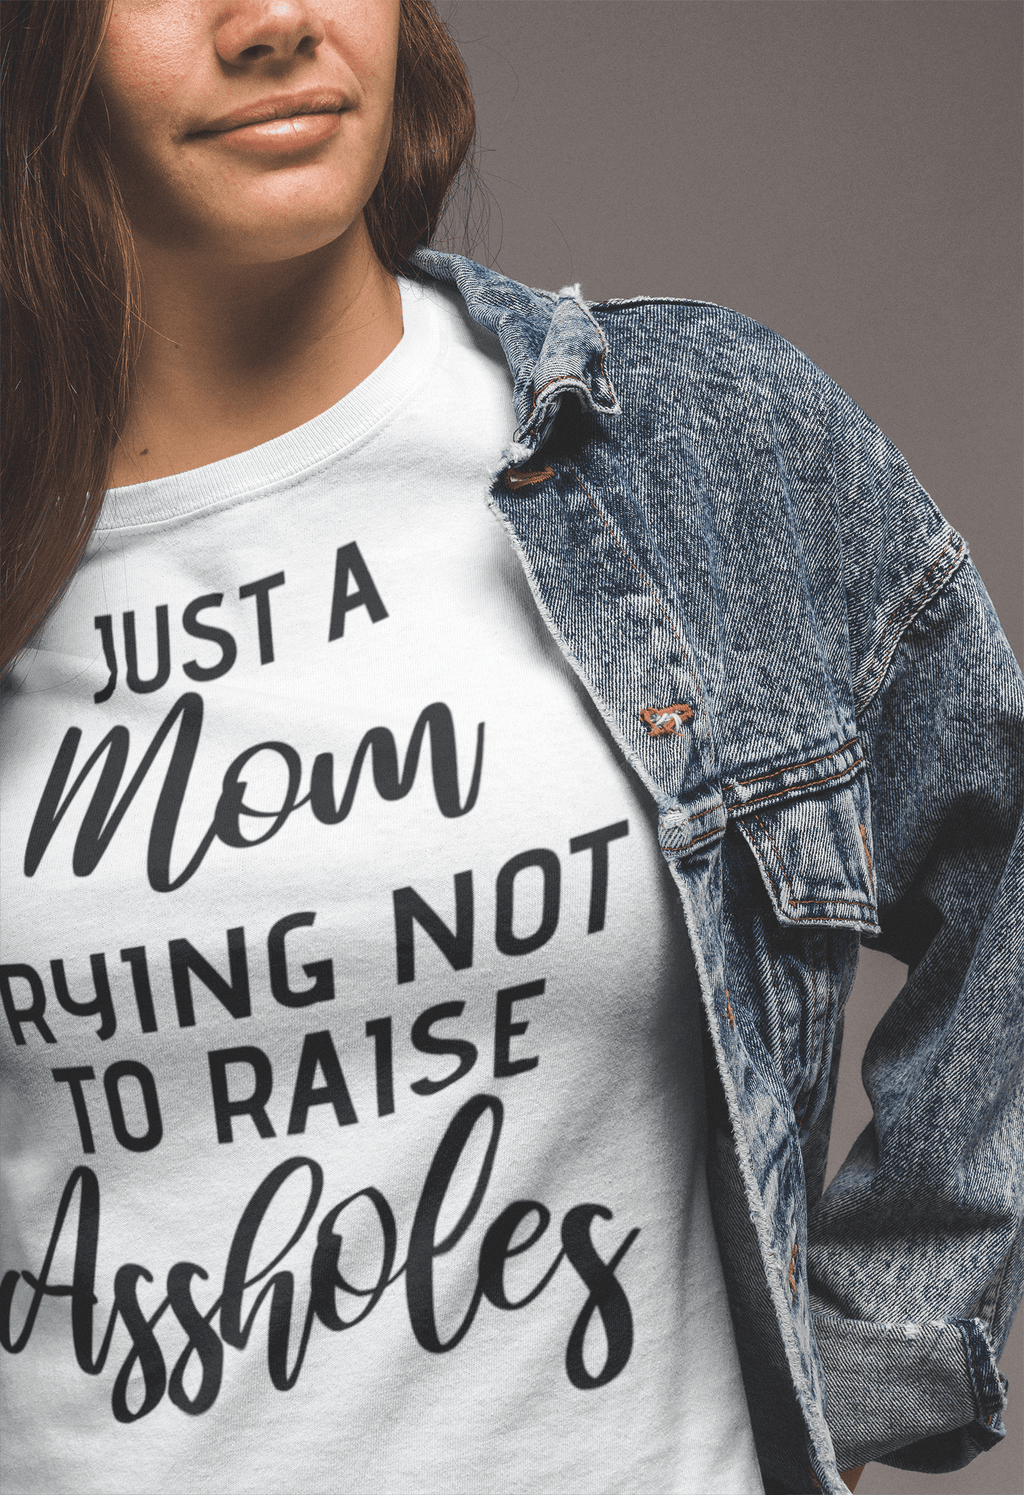 Just a Mom Trying Not To Raise Assholes Short-Sleeve Unisex   T-Shirt